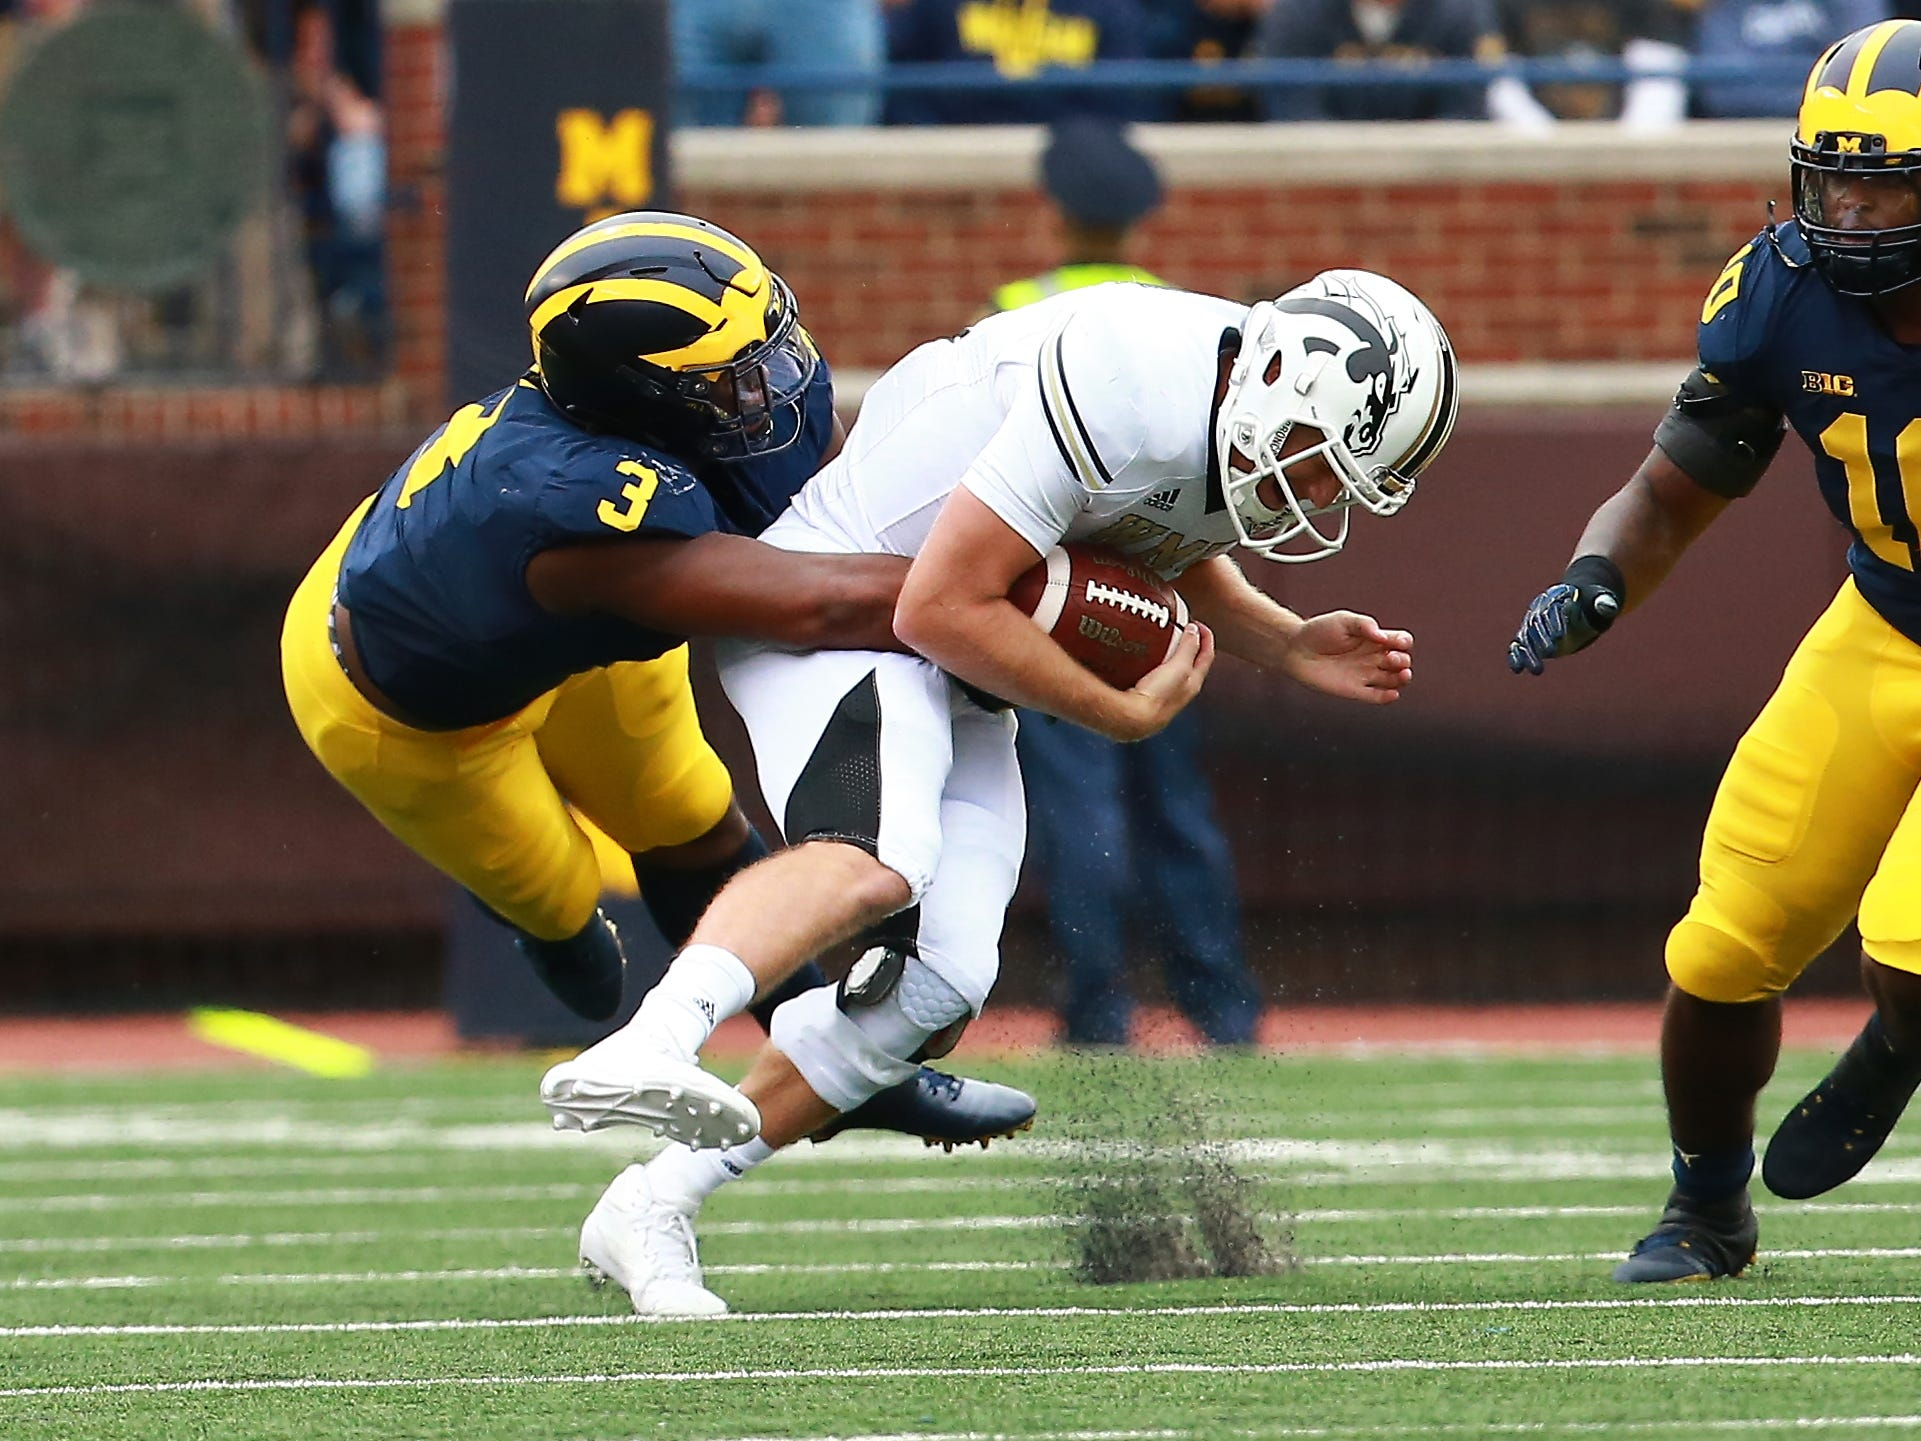 ANN ARBOR, MI - SEPTEMBER 08: Jon Wassink #16 of the Western Michigan Broncos runs the ball and is tackled by Rashan Gary #3 of the Michigan Wolverines in the second quarter at Michigan Stadium on September 8, 2018 in Ann Arbor, Michigan. (Photo by Rey Del Rio/Getty Images)